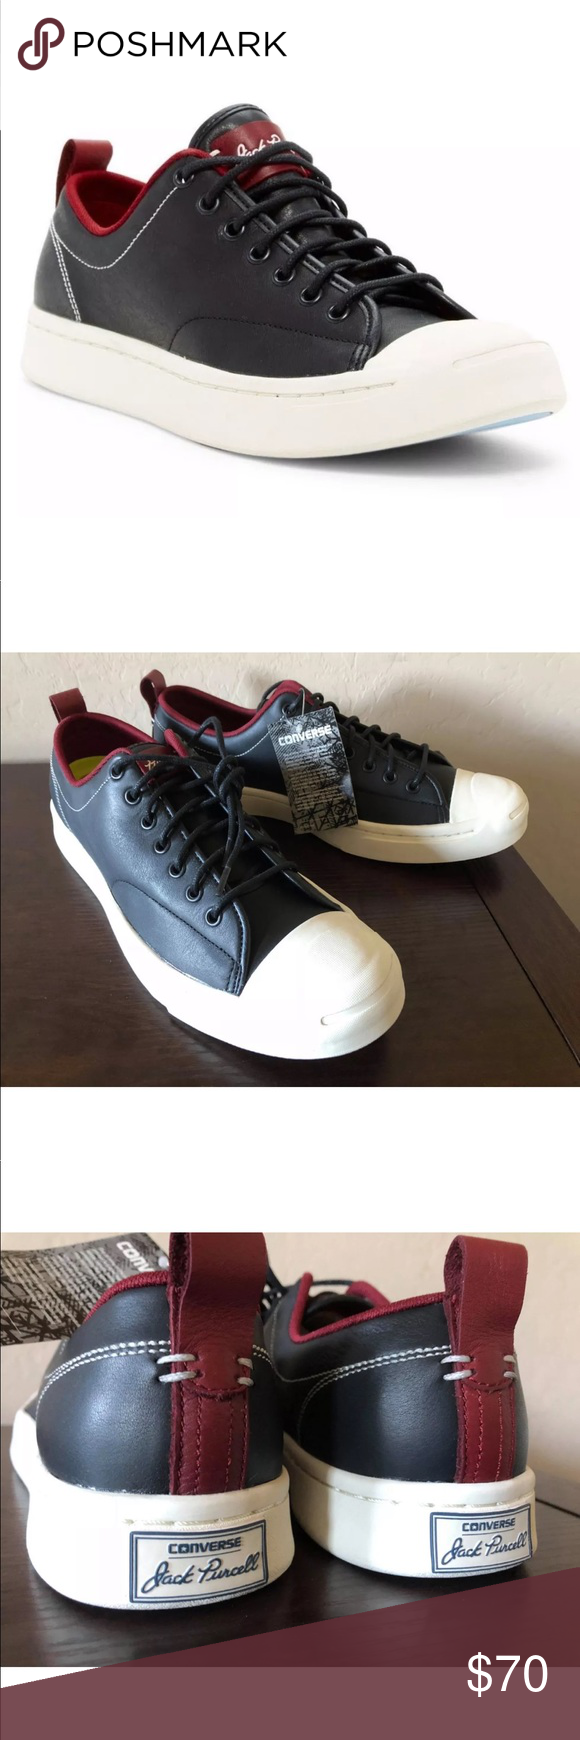 ccbb90dcad50 Men s Converse Jack Purcell JP M Series Ox Shoes NEW AUTHENTIC CONVERSE  JACK PURCELL M SERIES